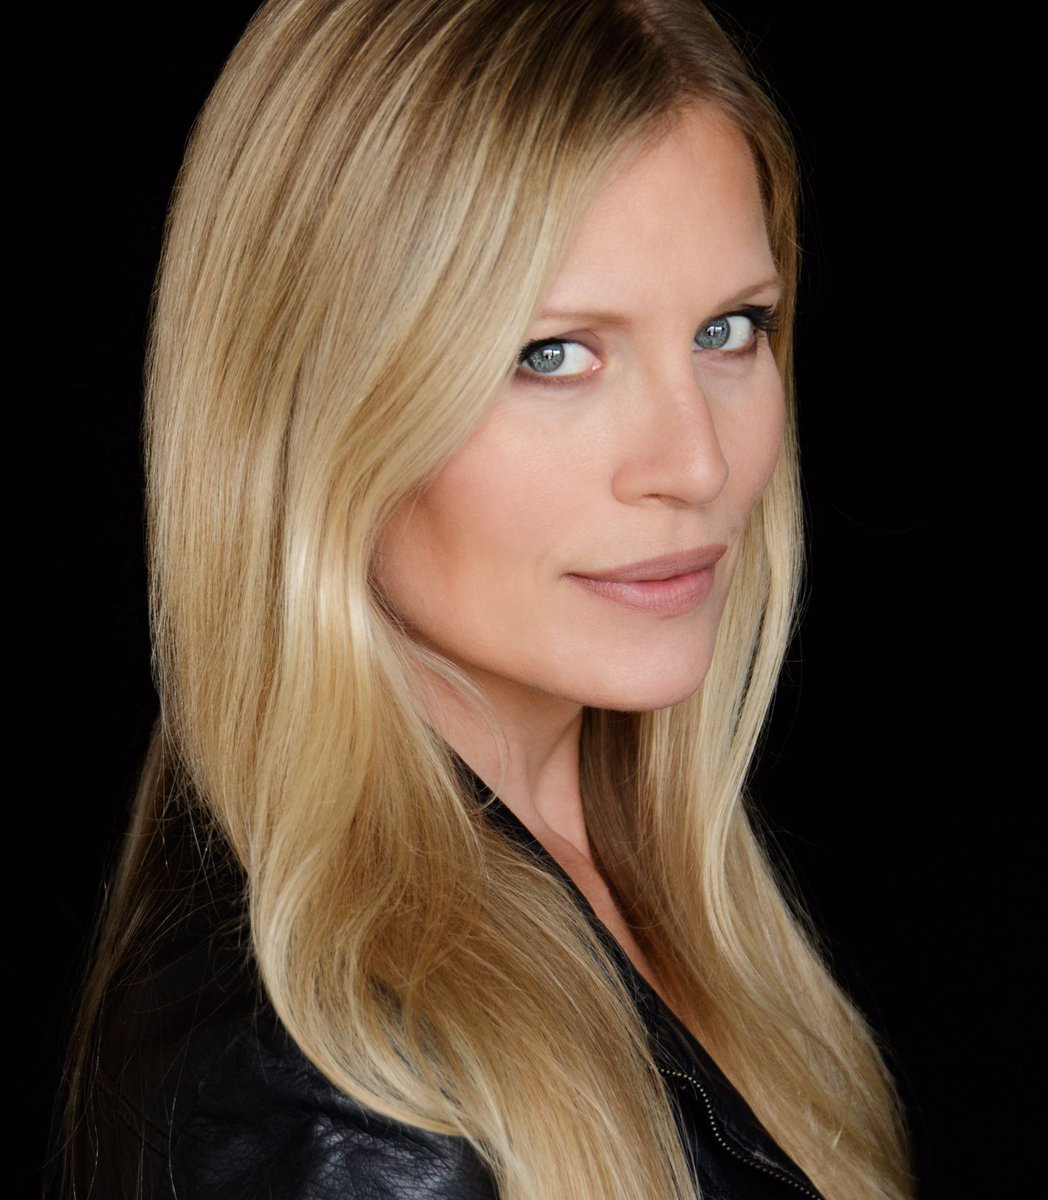 Brette Taylor American Actress